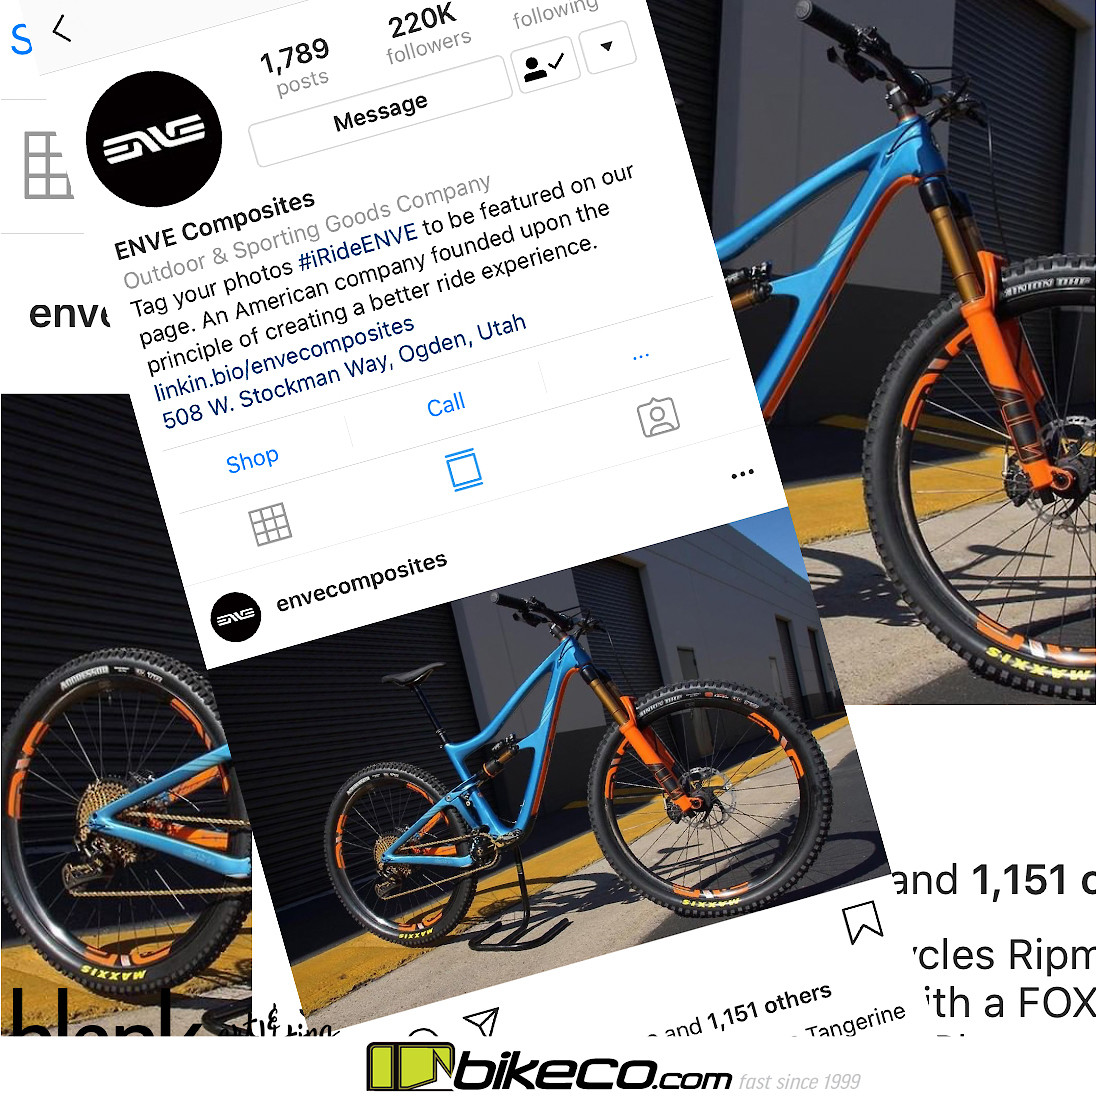 A fresh Ibis Ripmo heads to its new home. For all the flash of the Tangerine Sky frame, Gold XX1 and Orange Fork for me the real highlight is the subtlety of the matte Chris King components balancing the build. Check out the custom builder on BikeCo.com to spec your ultimate Ibis Ripmo! BikeCo offers the best spec, setup, tune and pricing in MTB.